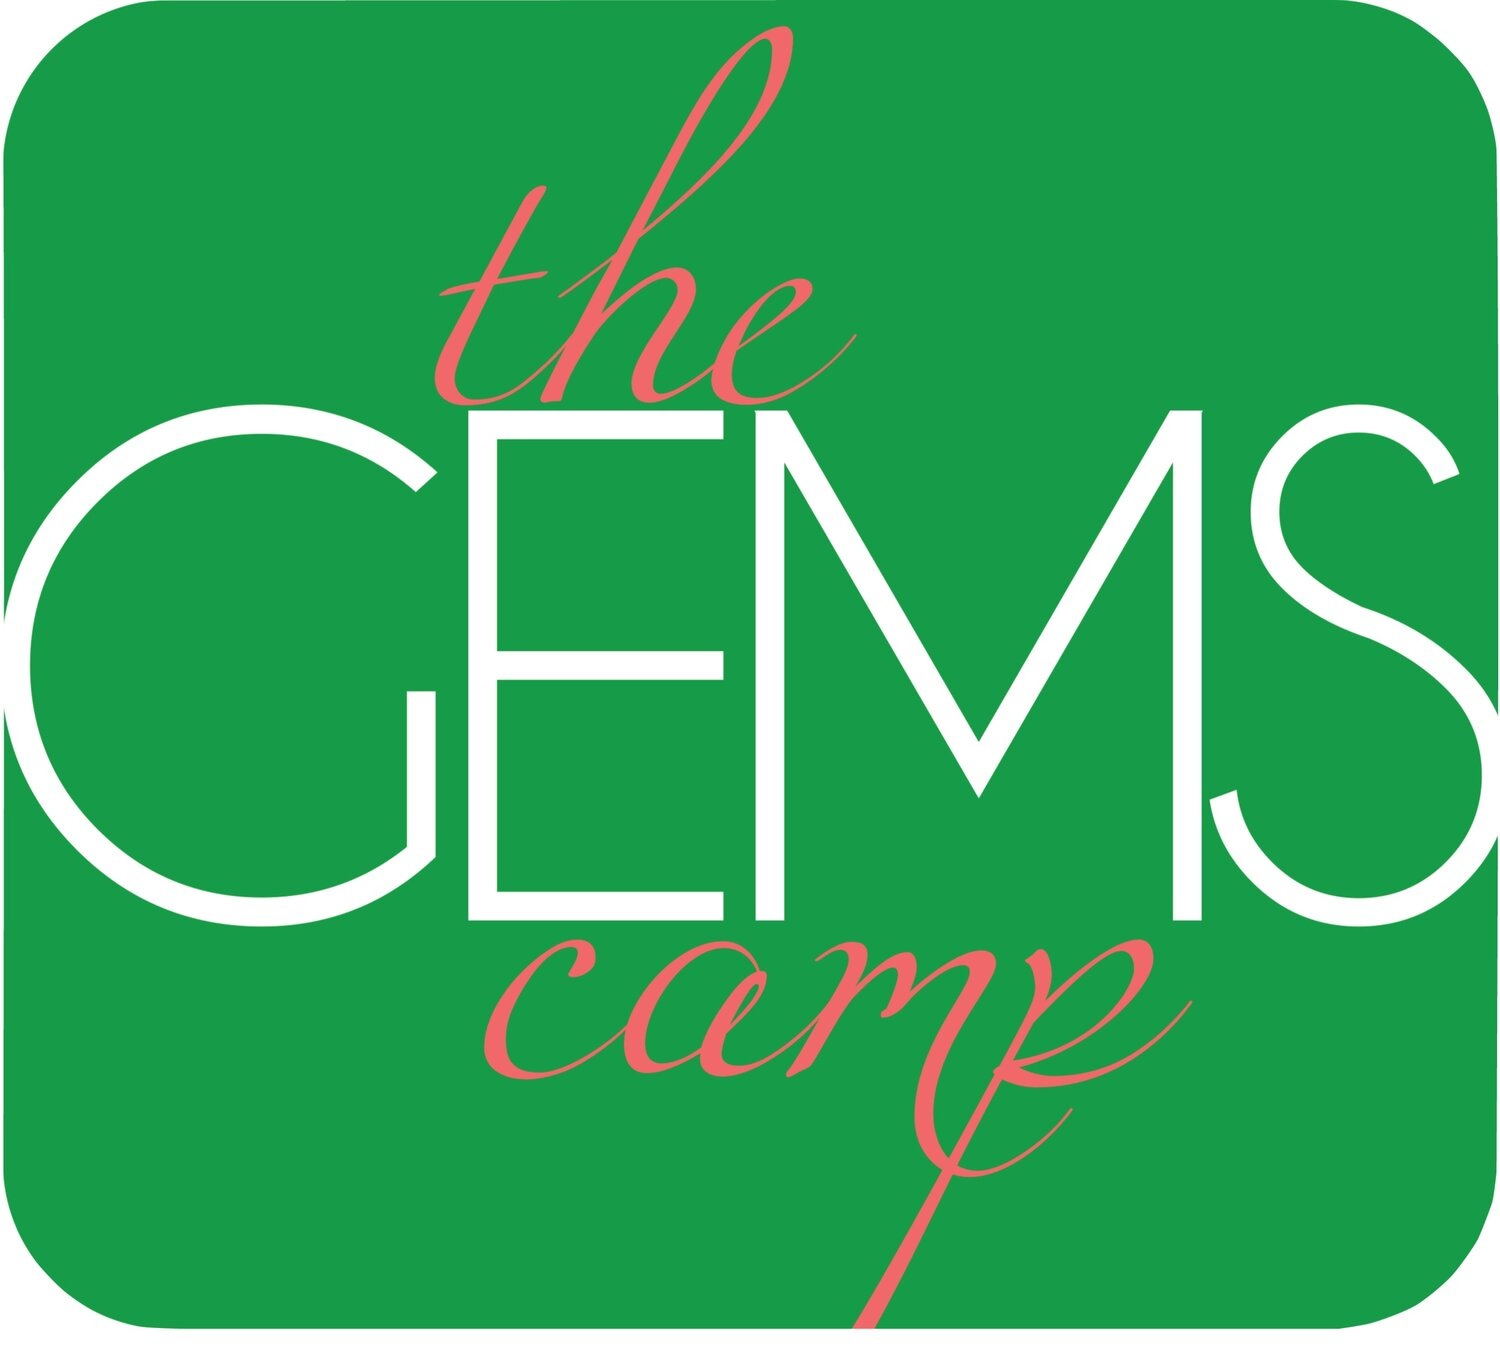 The GEMS Camp